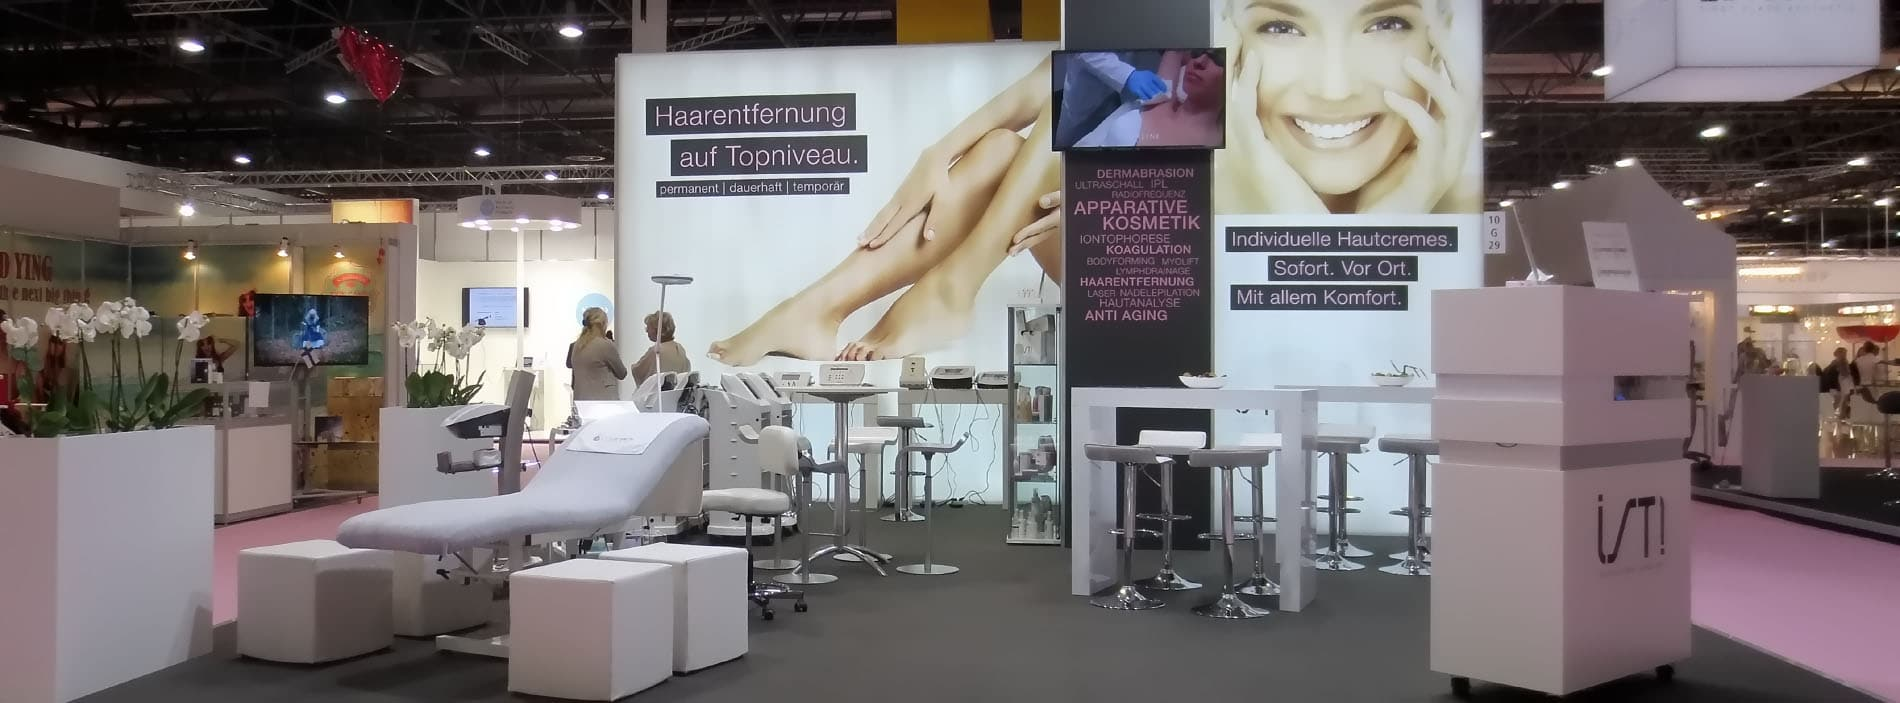 Cosmomed Medical Beauty GmbH auf der Beauty Düsseldorf 2018